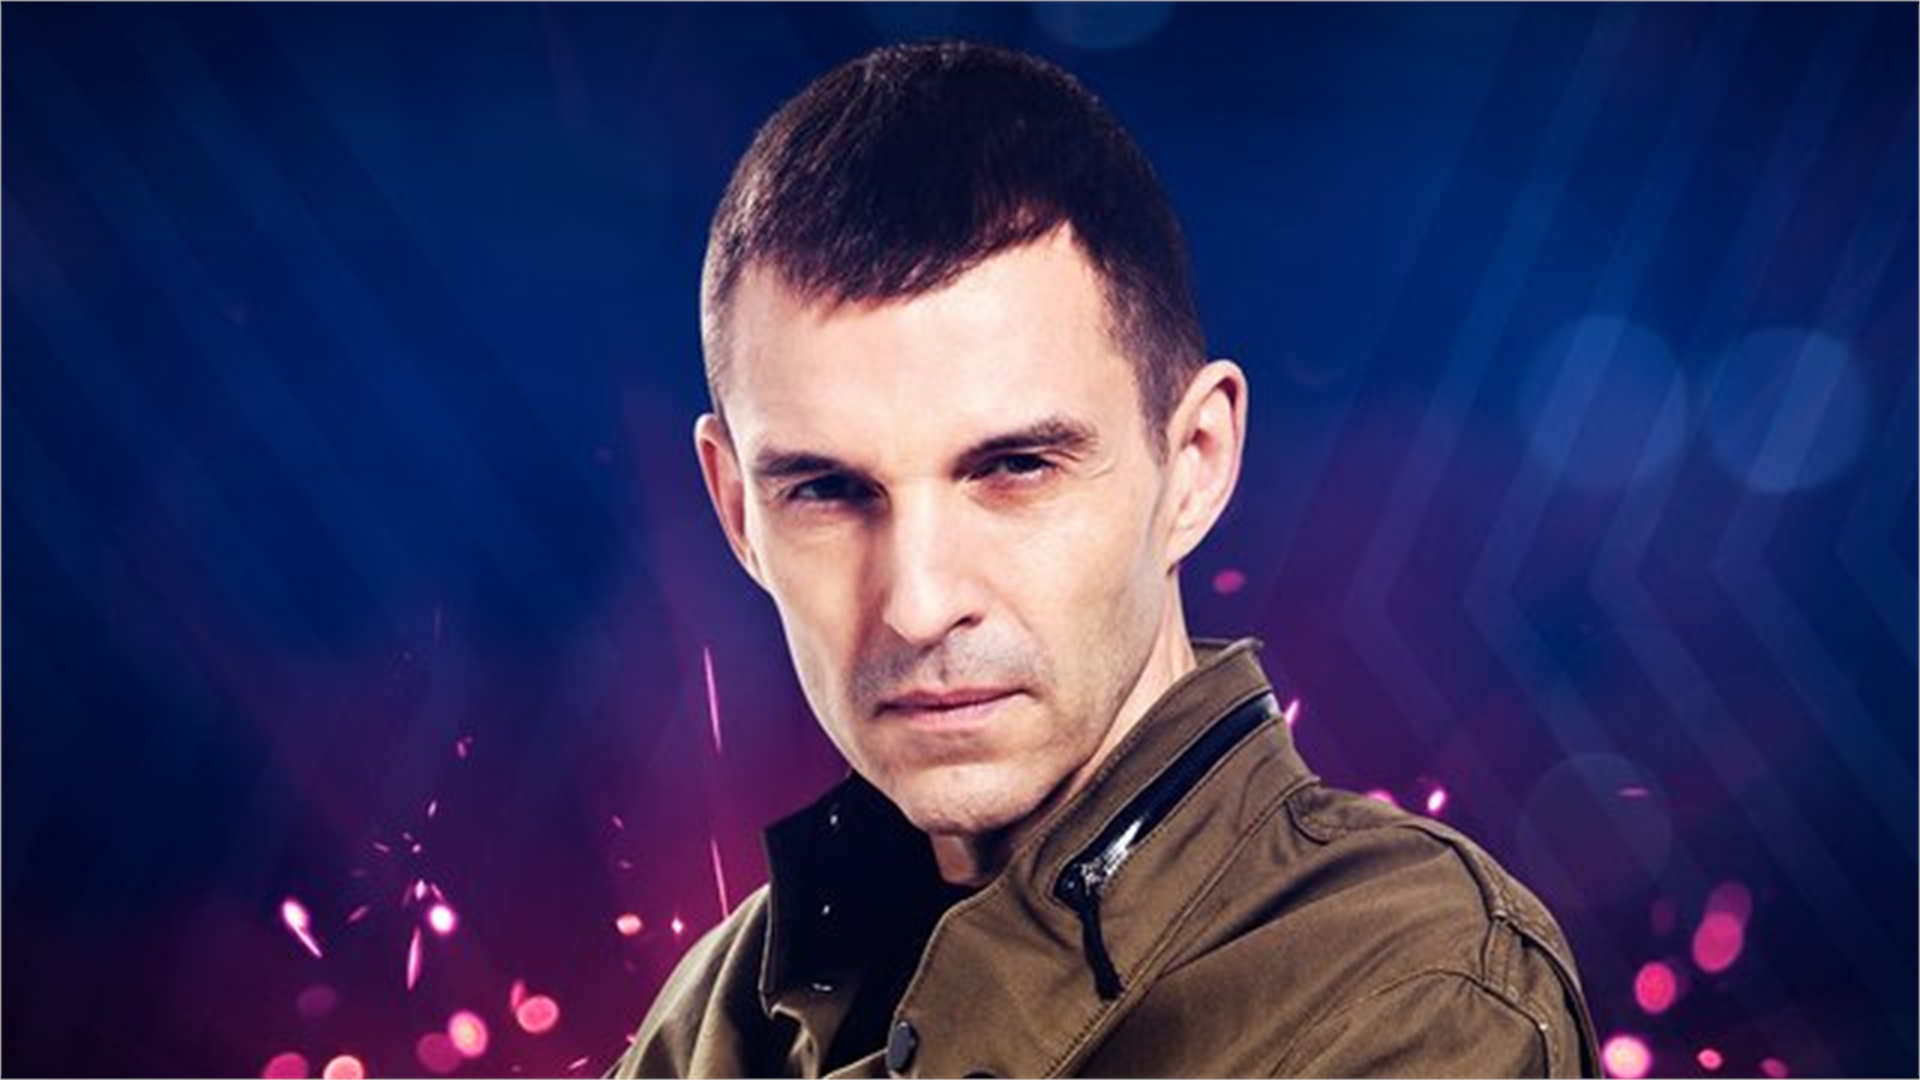 Tim Westwood - Limited Tickets On The Door